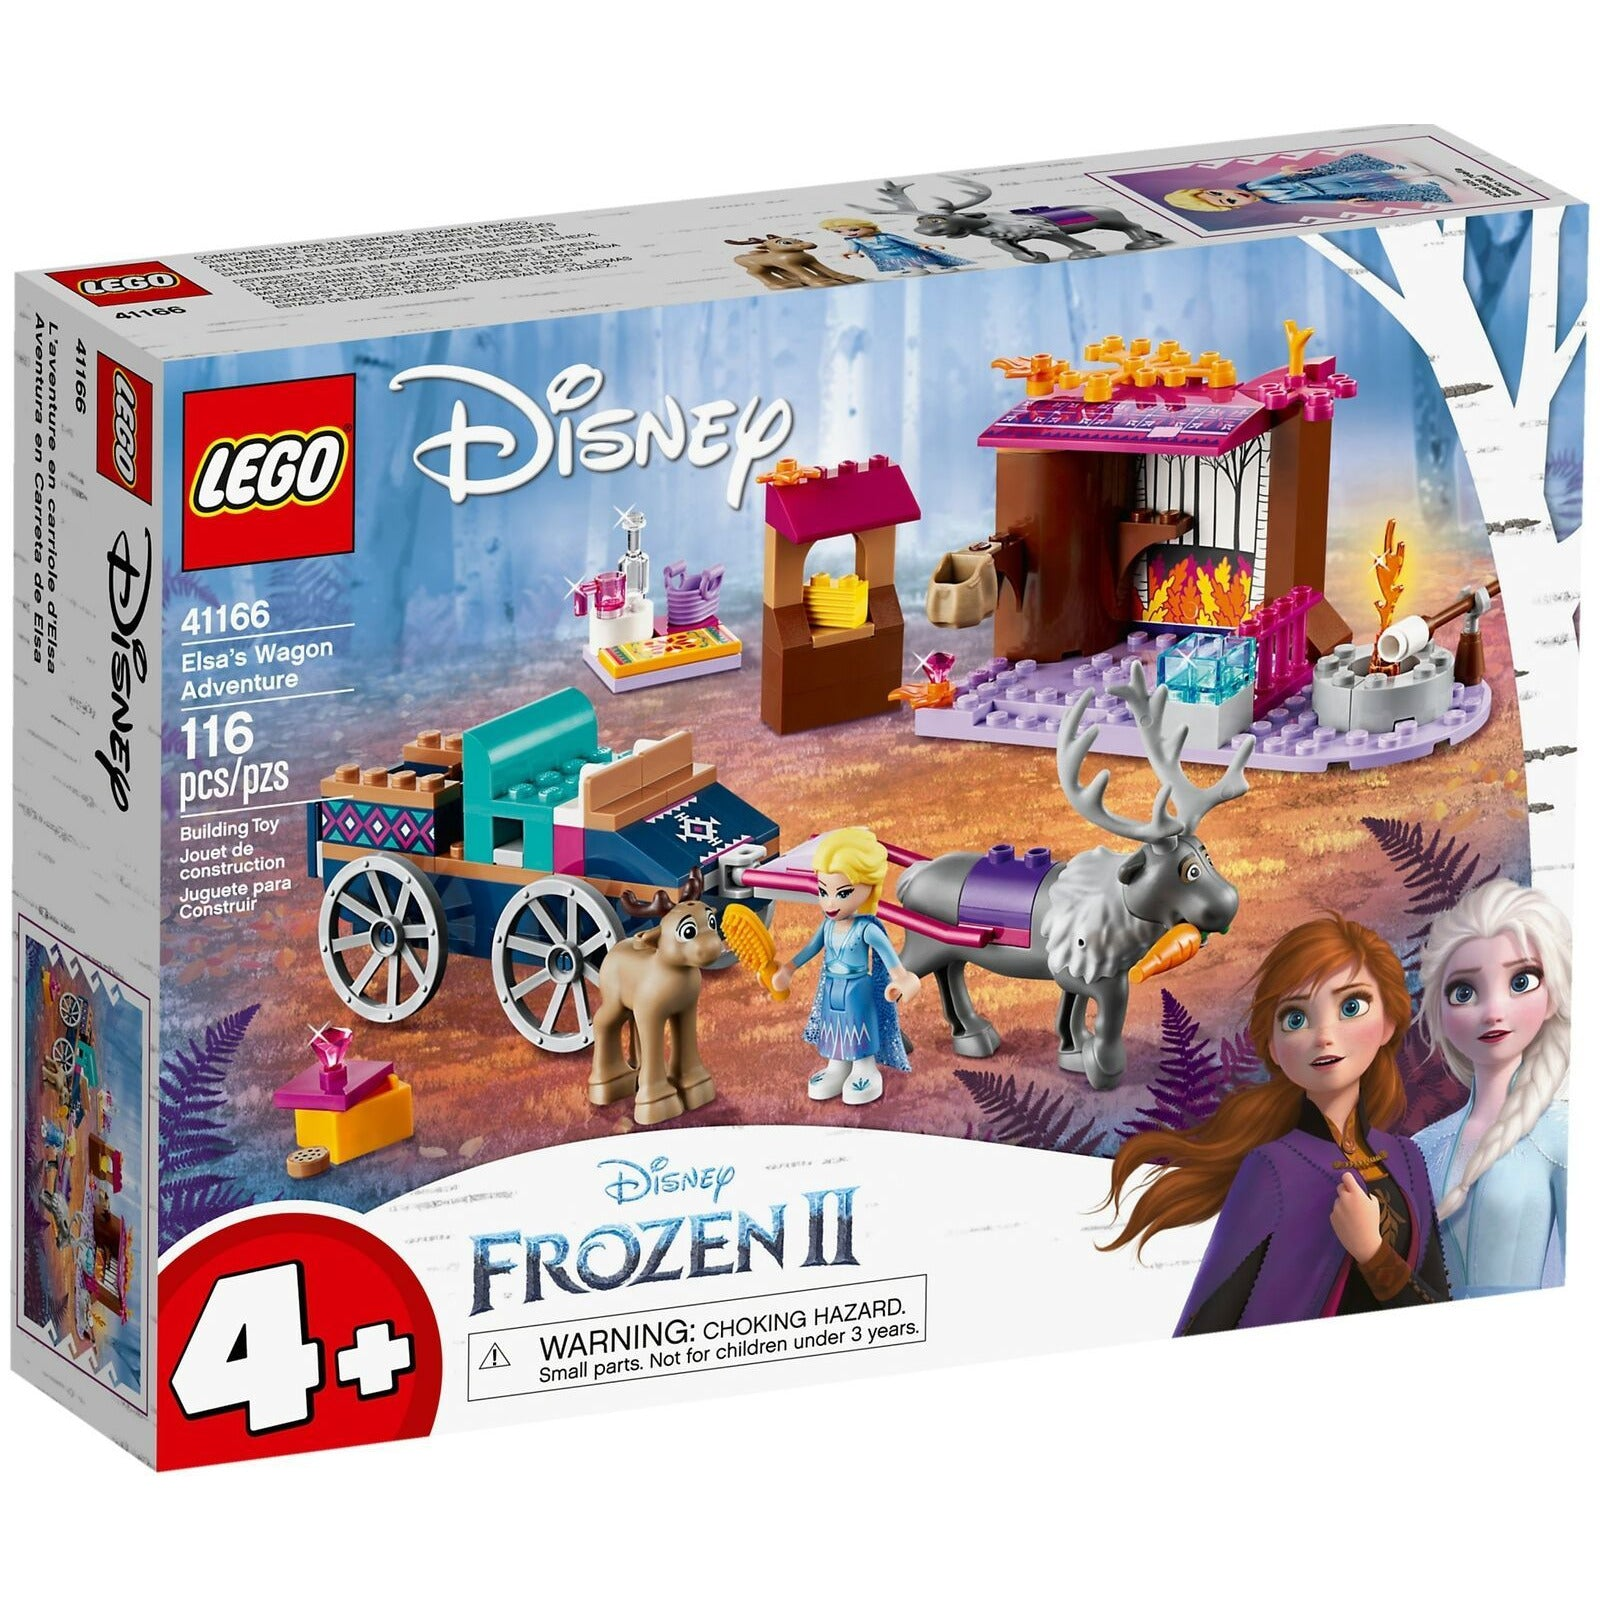 Lego Disney Frozen Elsa's Wagon Adventure 41166